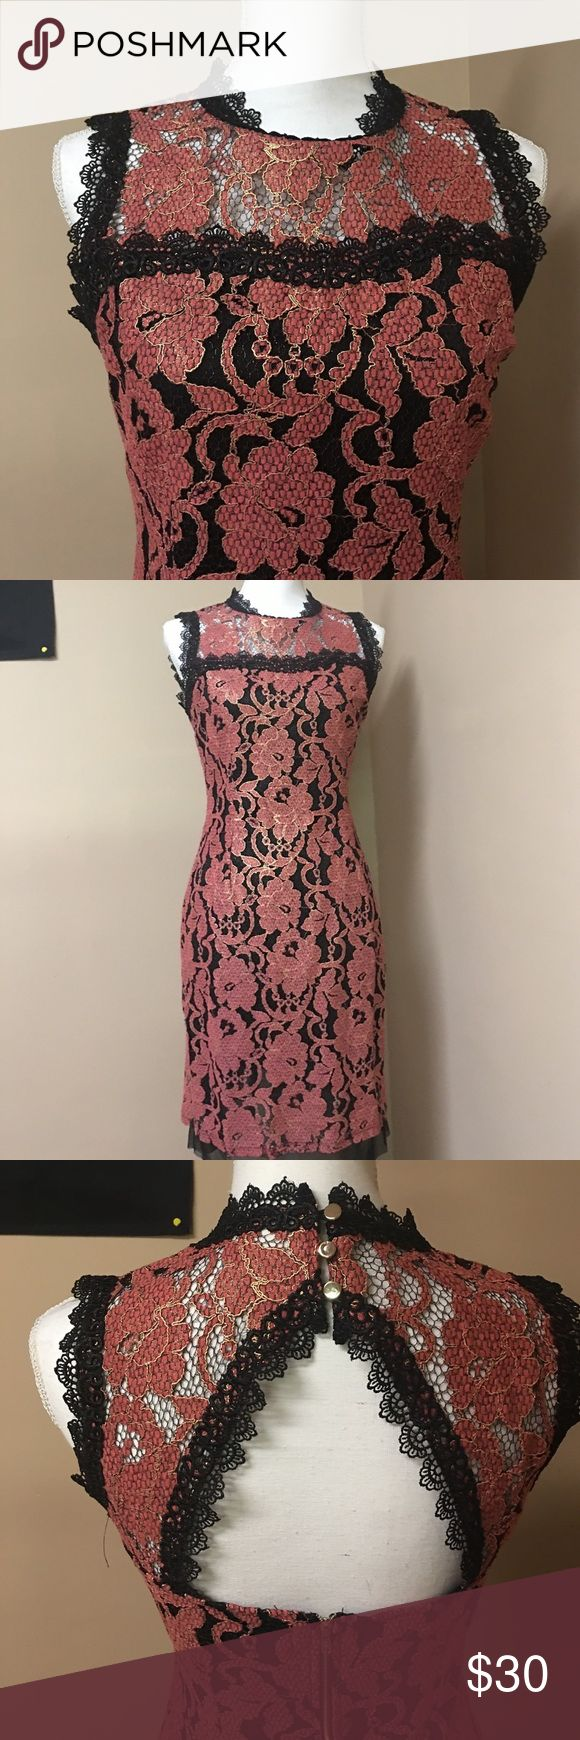 Gorgeous Filly Flair dress with amazing detail! Beautiful mauve flowers accented by gold detail! Gorgeous Filly Flair Dress in Large. Filly Flair Dresses Midi